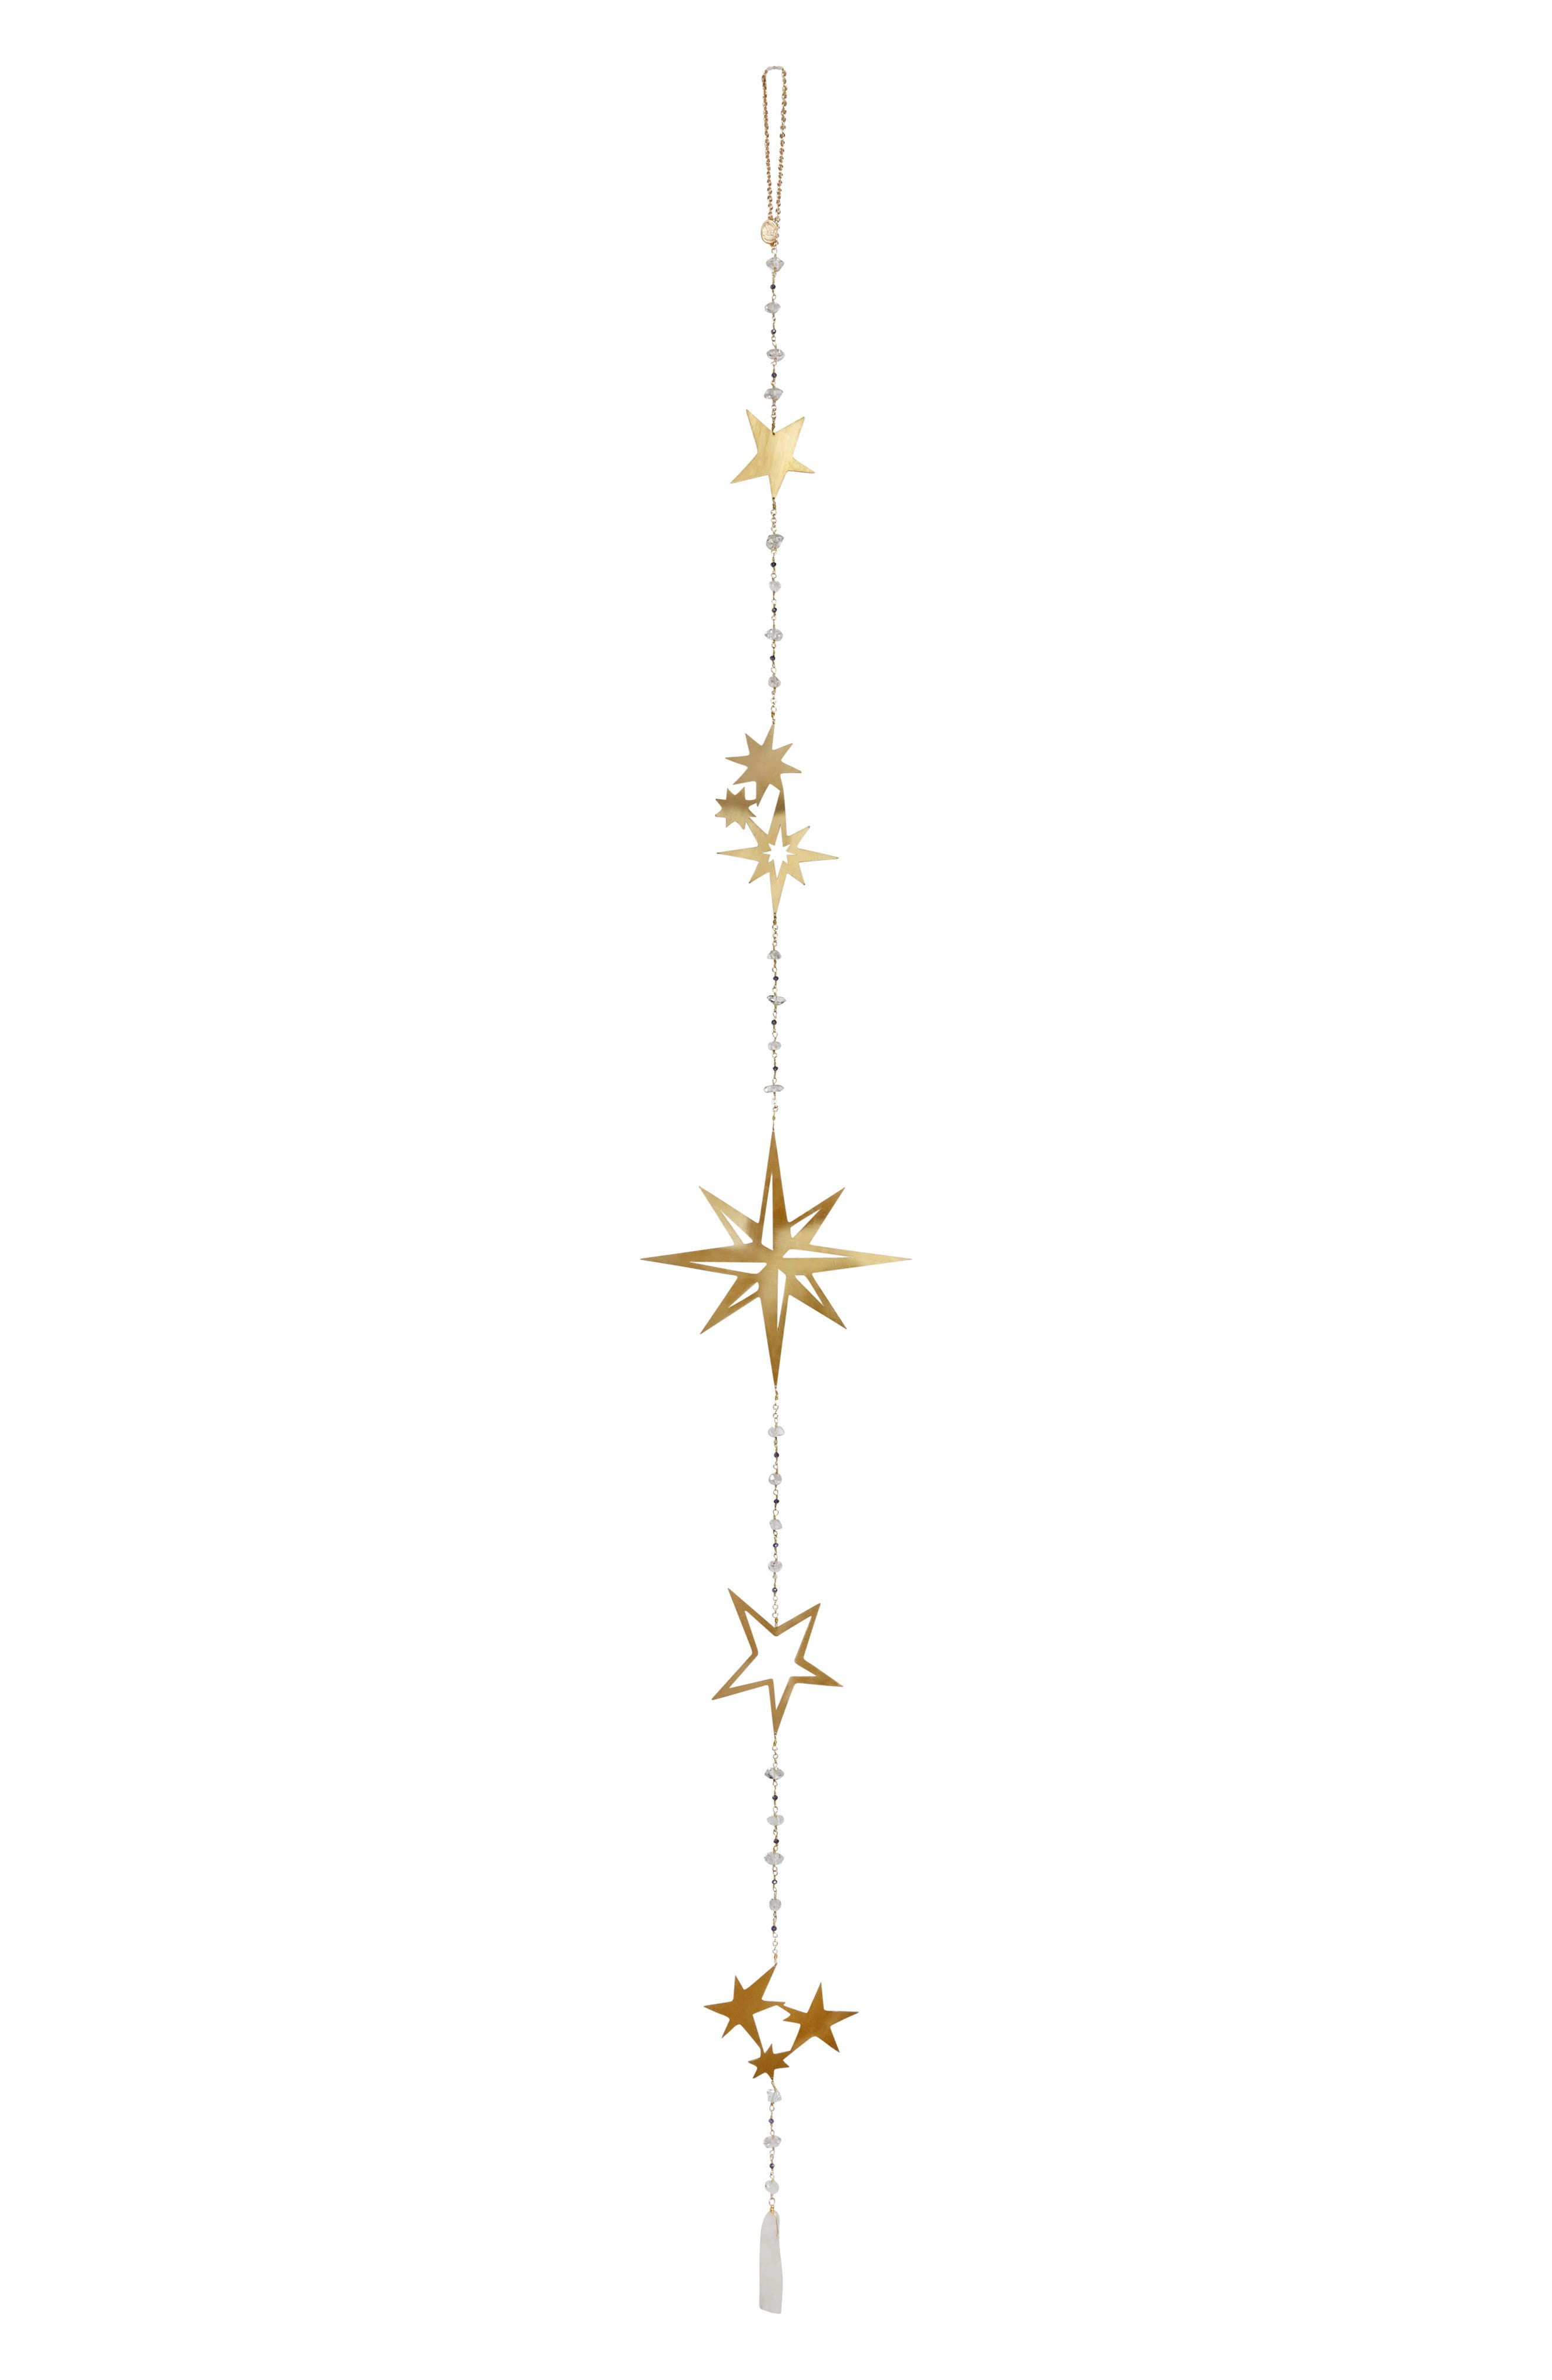 Lighten and enlighten any room with the laser-cut brass stars of this wall hanging studded with Herkimer quartz crystals believed to possess positive energy. Style Name: Ariana Ost Crystal Star Wall Hanging. Style Number: 5747808. Available in stores.